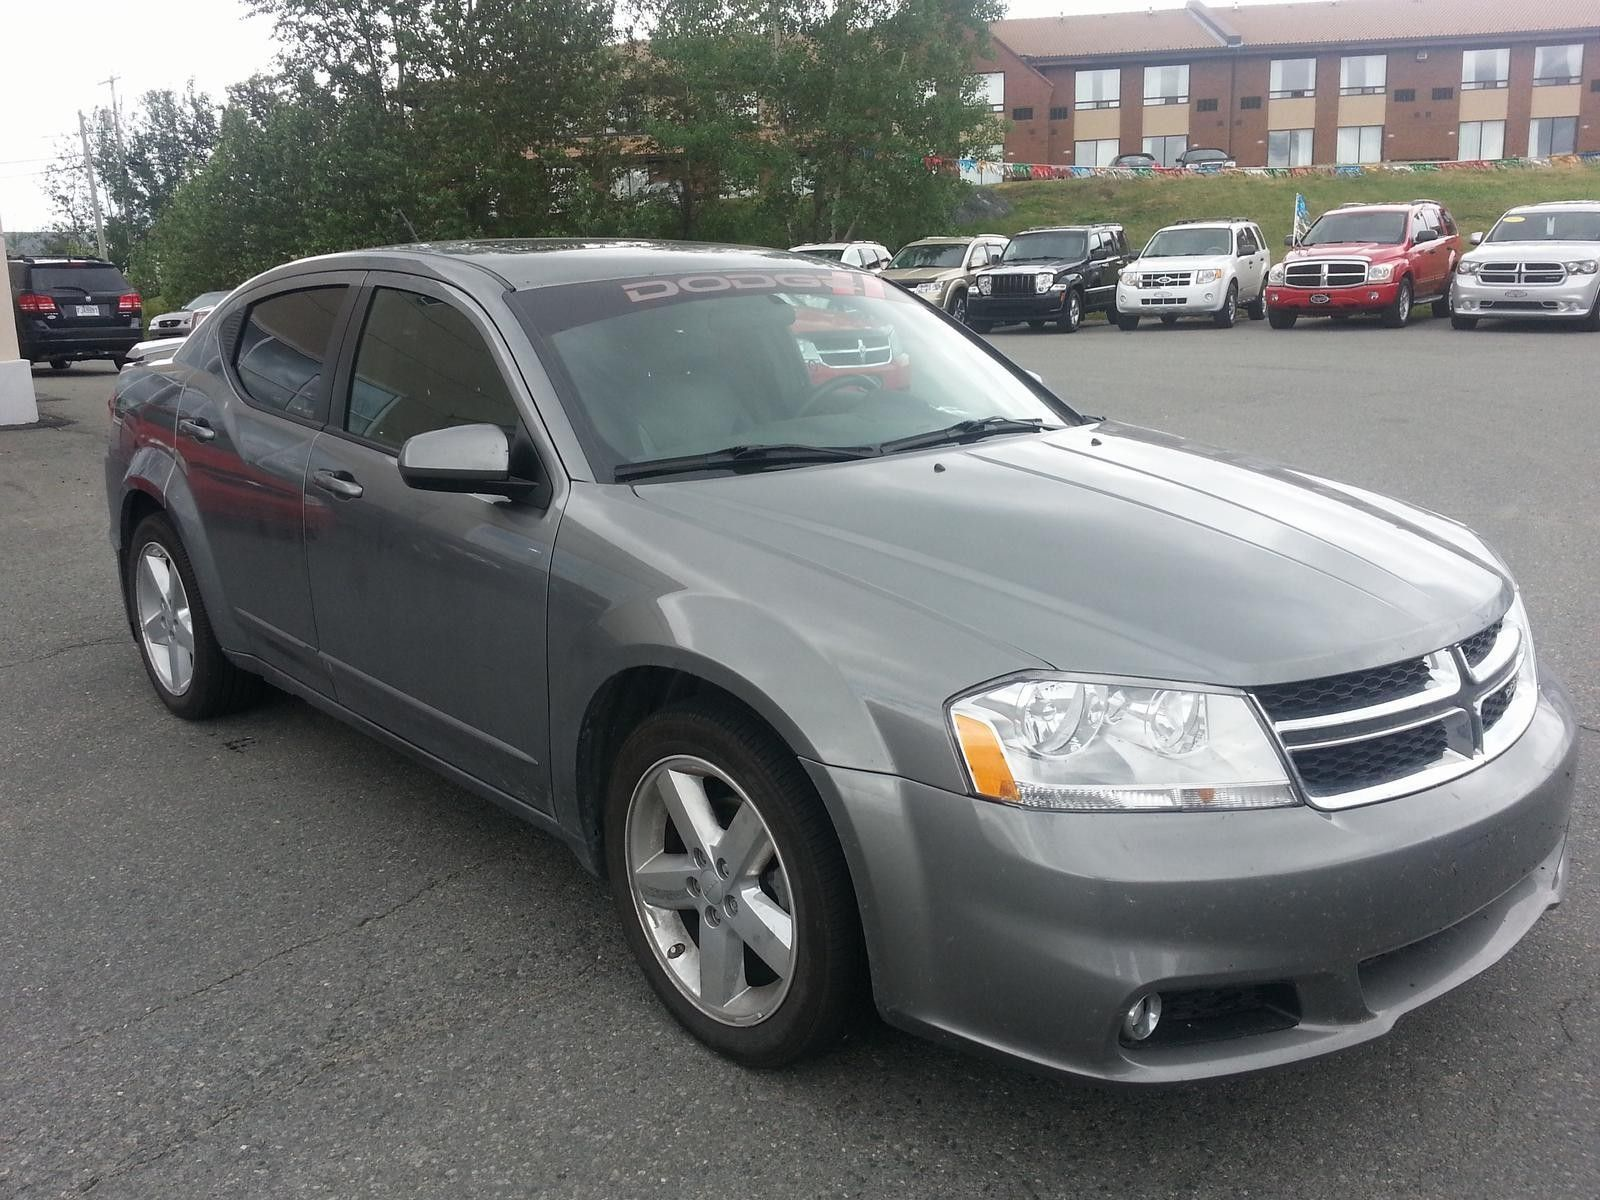 Dodge Avenger No Heat The Miracle Of Dodge Avenger No Heat In 2021 Dodge Avenger Toyota Corolla Dodge